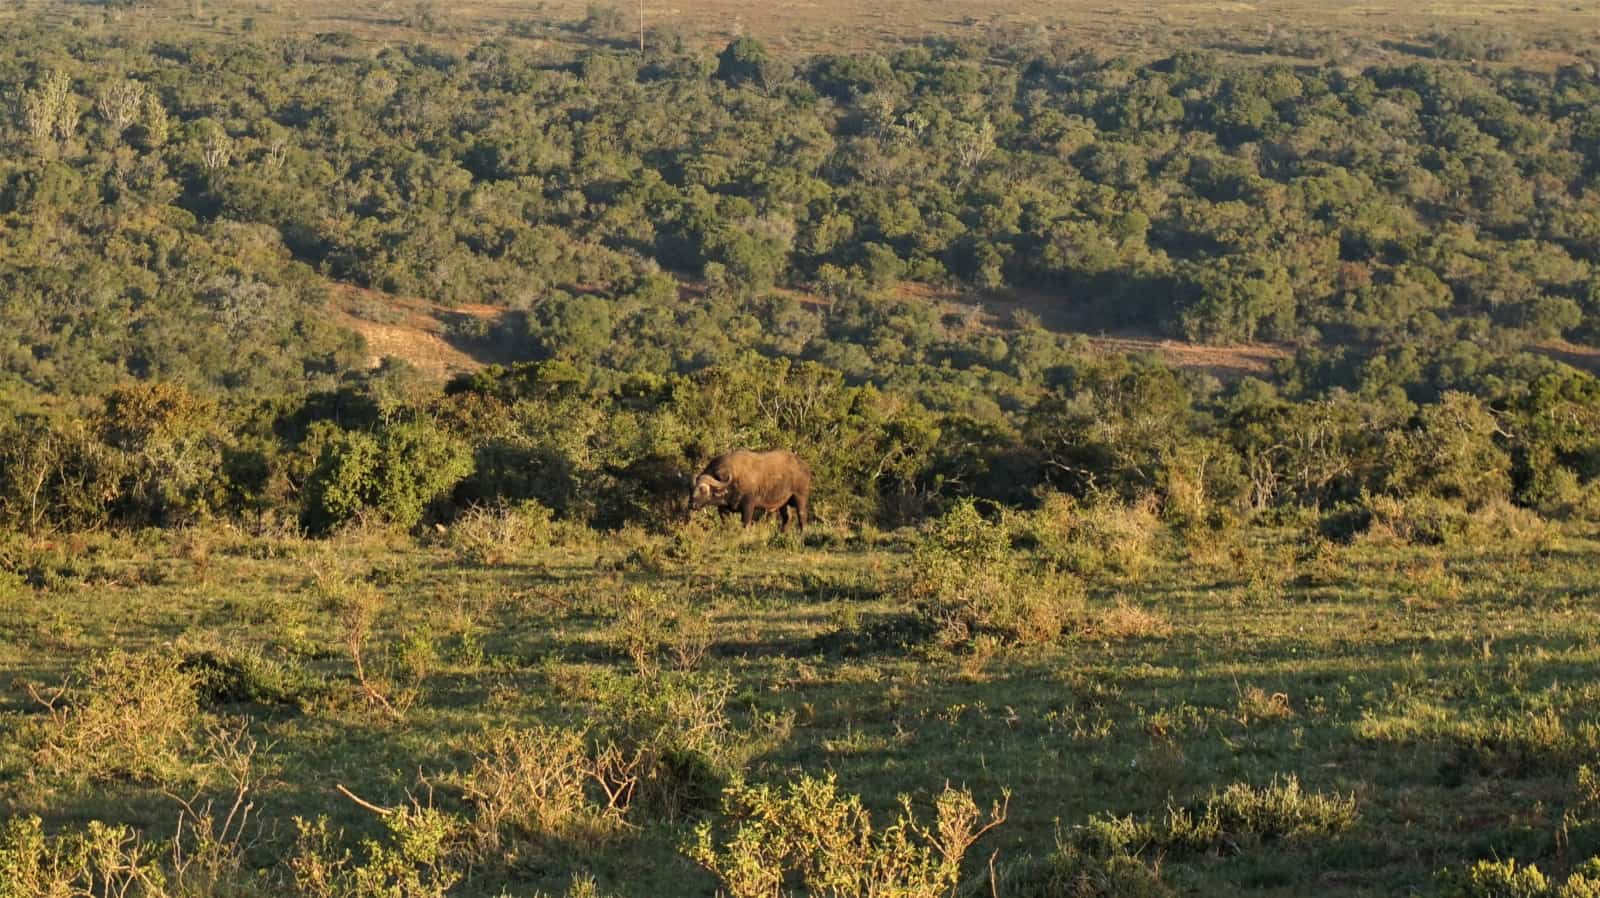 Can you spot the buffalo? Addo Elephant National Park